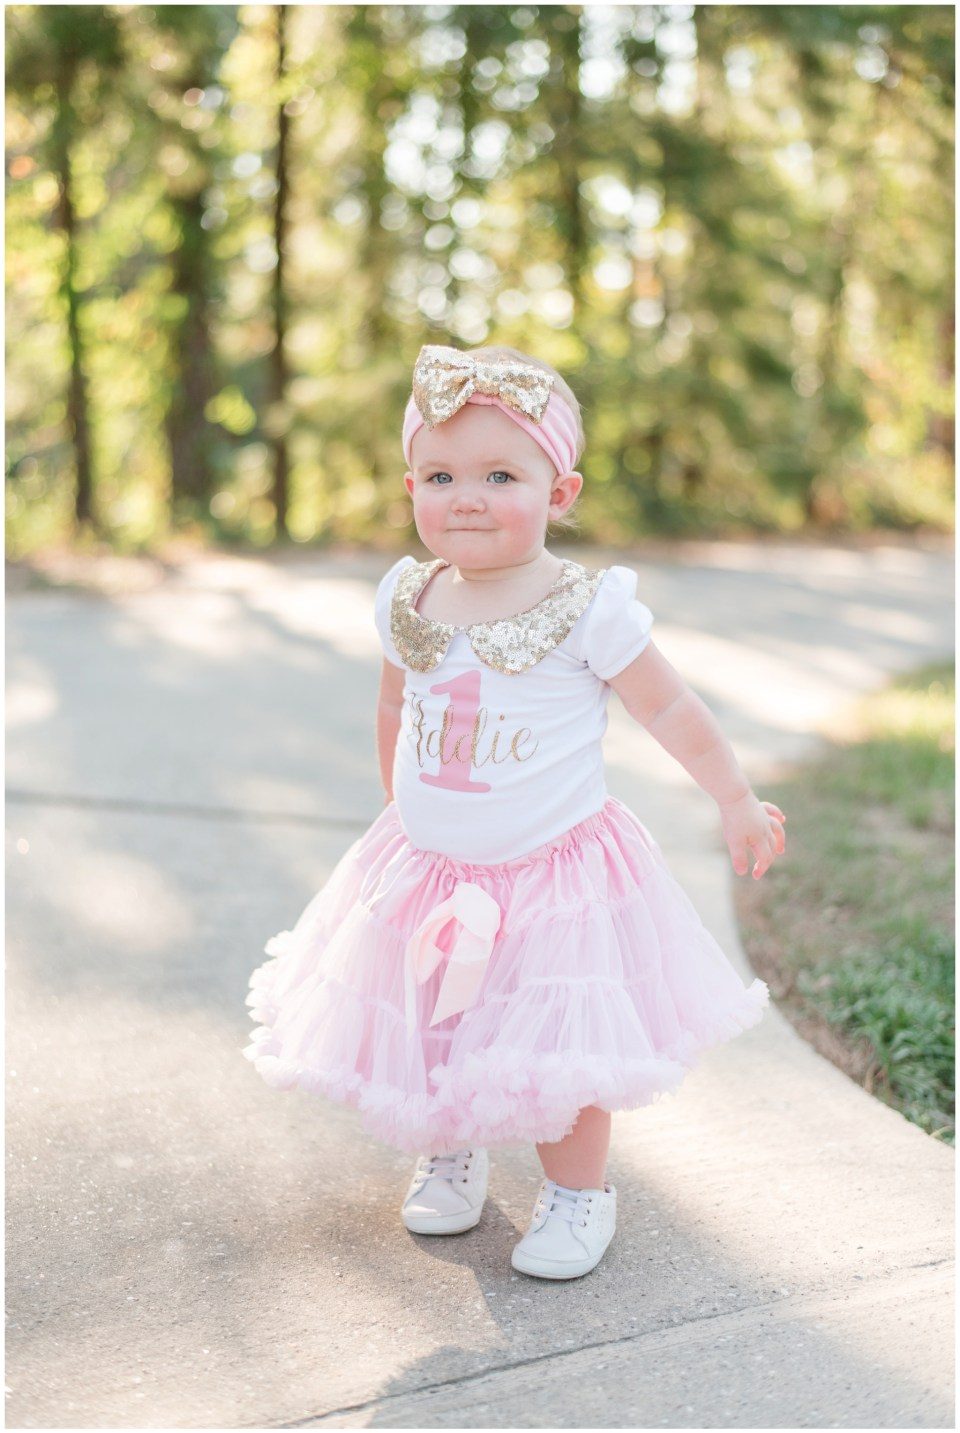 Kingwood child photographer 1 year milestone session with little girl in pink & gold sequin outfit